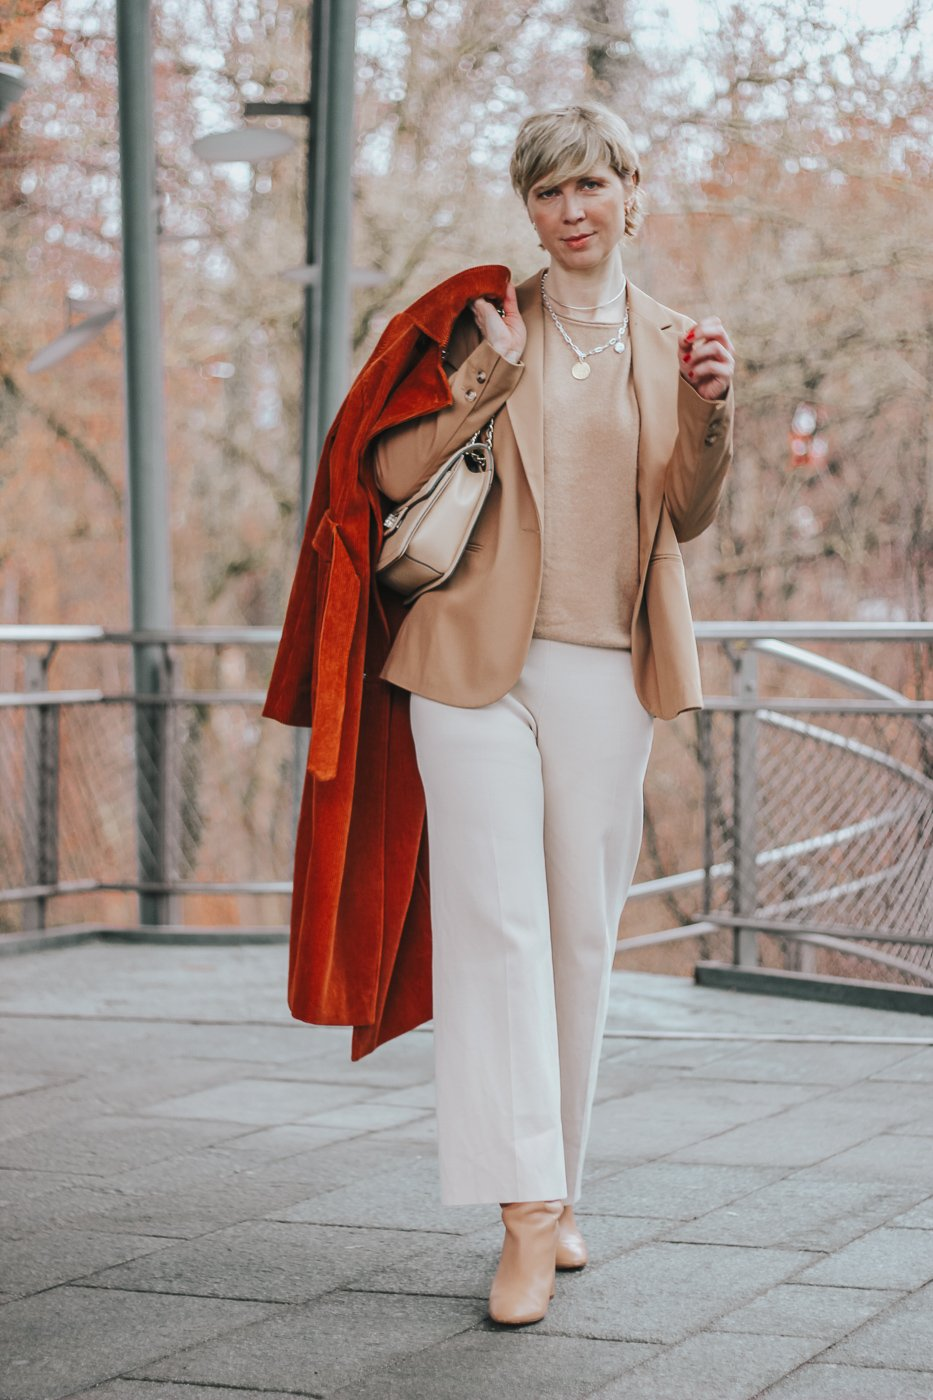 conny doll lifestyle: Winterstyling mit hellen Farben, Cordmantel in Rostrot, Outfitinspiration